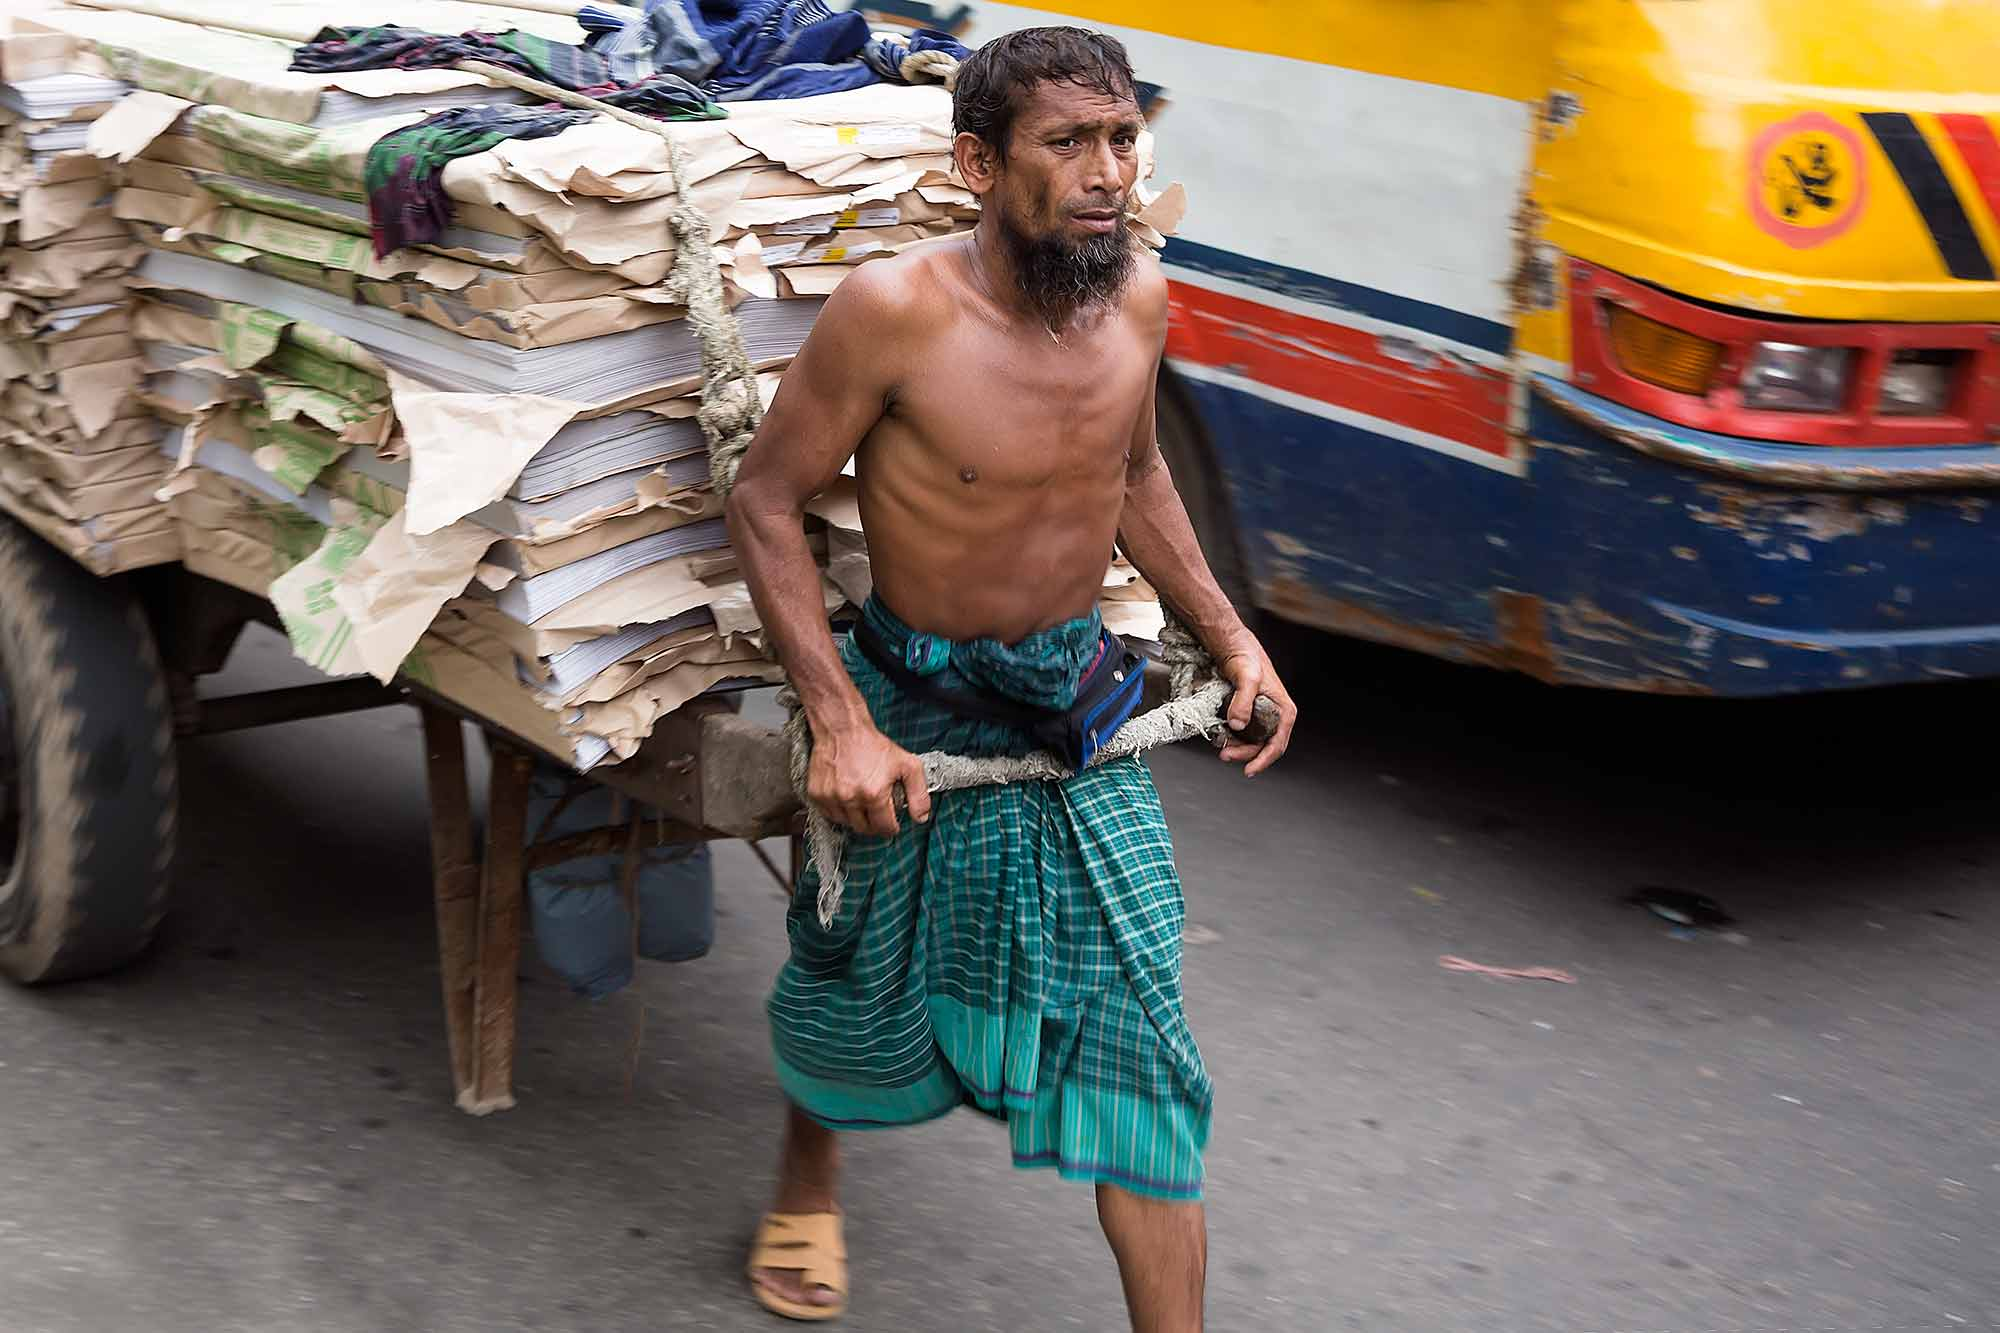 A man pulling a fully loaded cart with leather in the streets of Dhaka, Bangladesh. © Ulli Maier & Nisa Maier